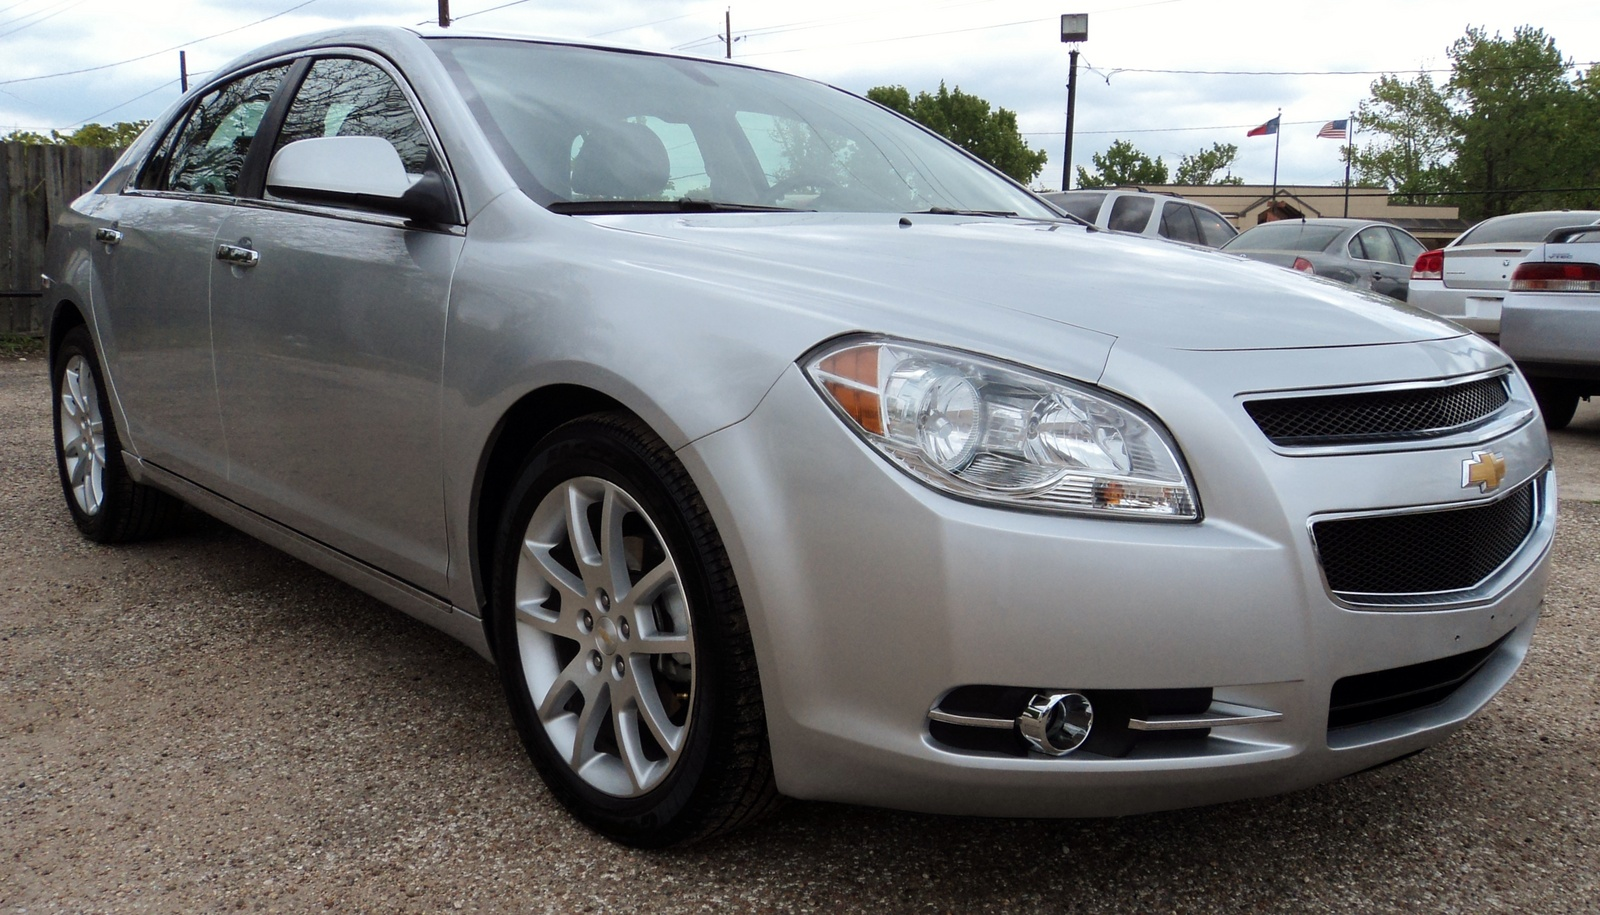 2012 chevrolet malibu pictures cargurus. Cars Review. Best American Auto & Cars Review